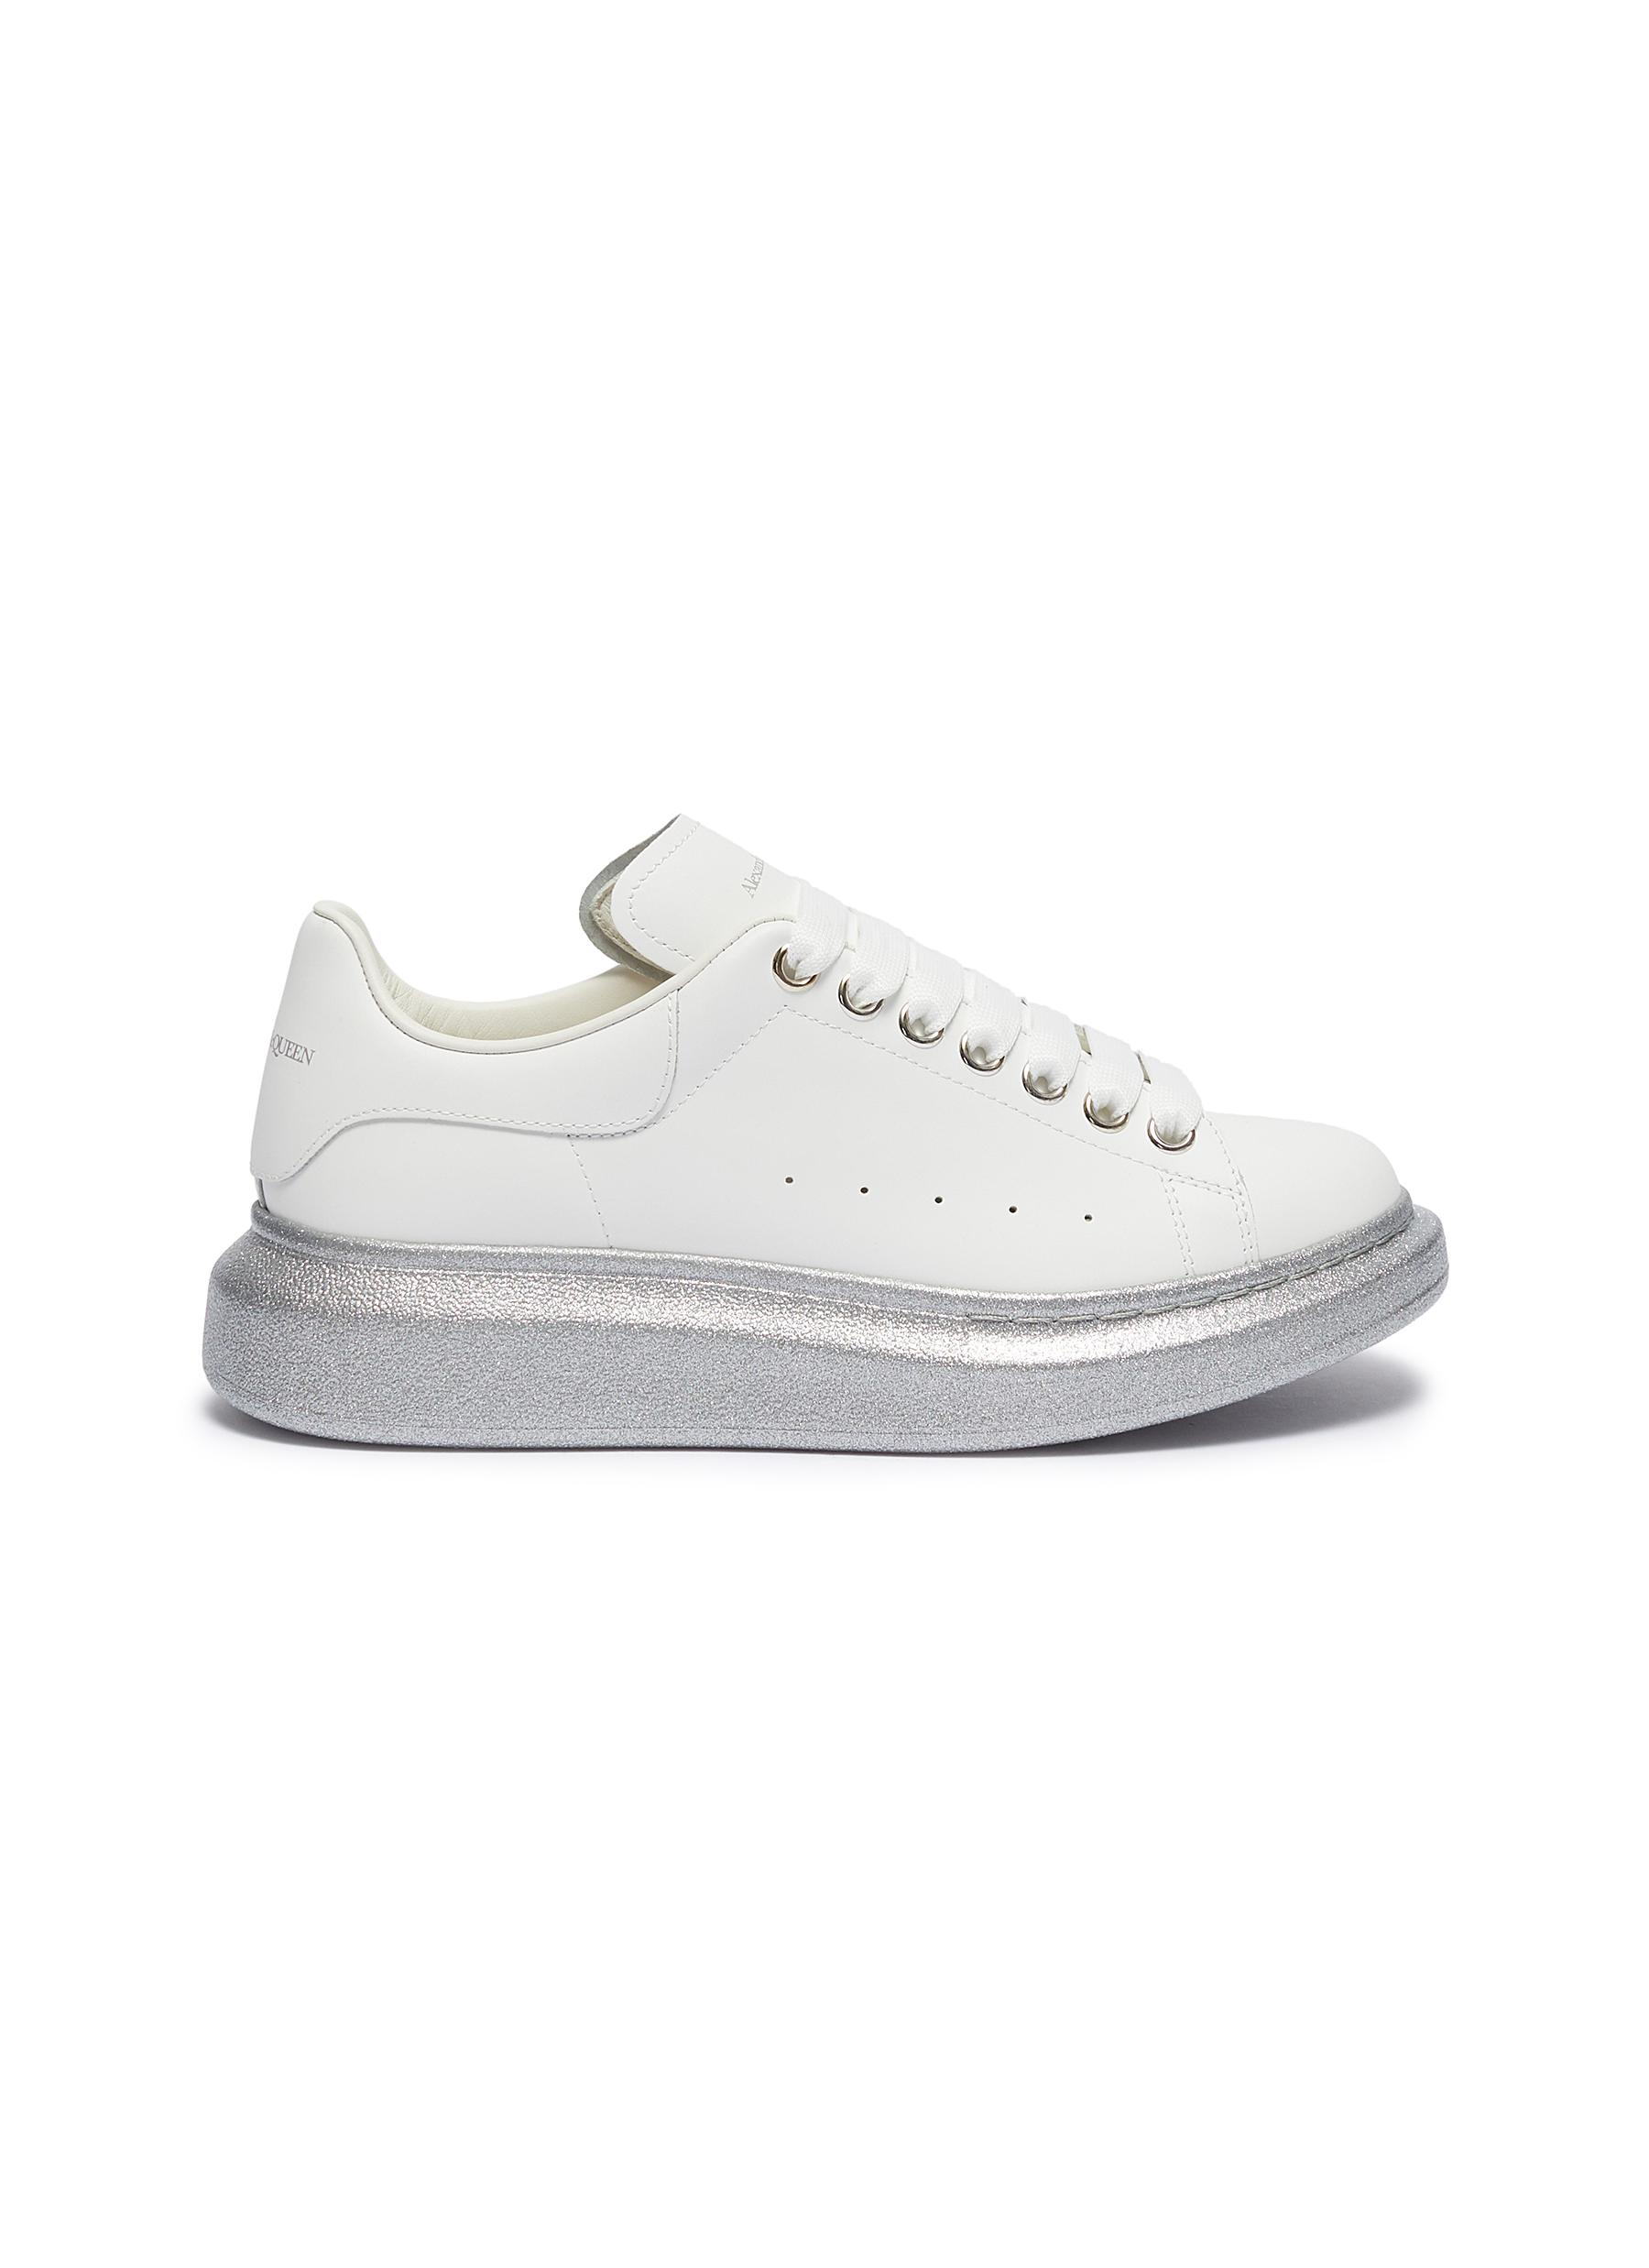 Alexander Mcqueen Sneakers 'Oversized Sneaker' in leather with glitter outsole